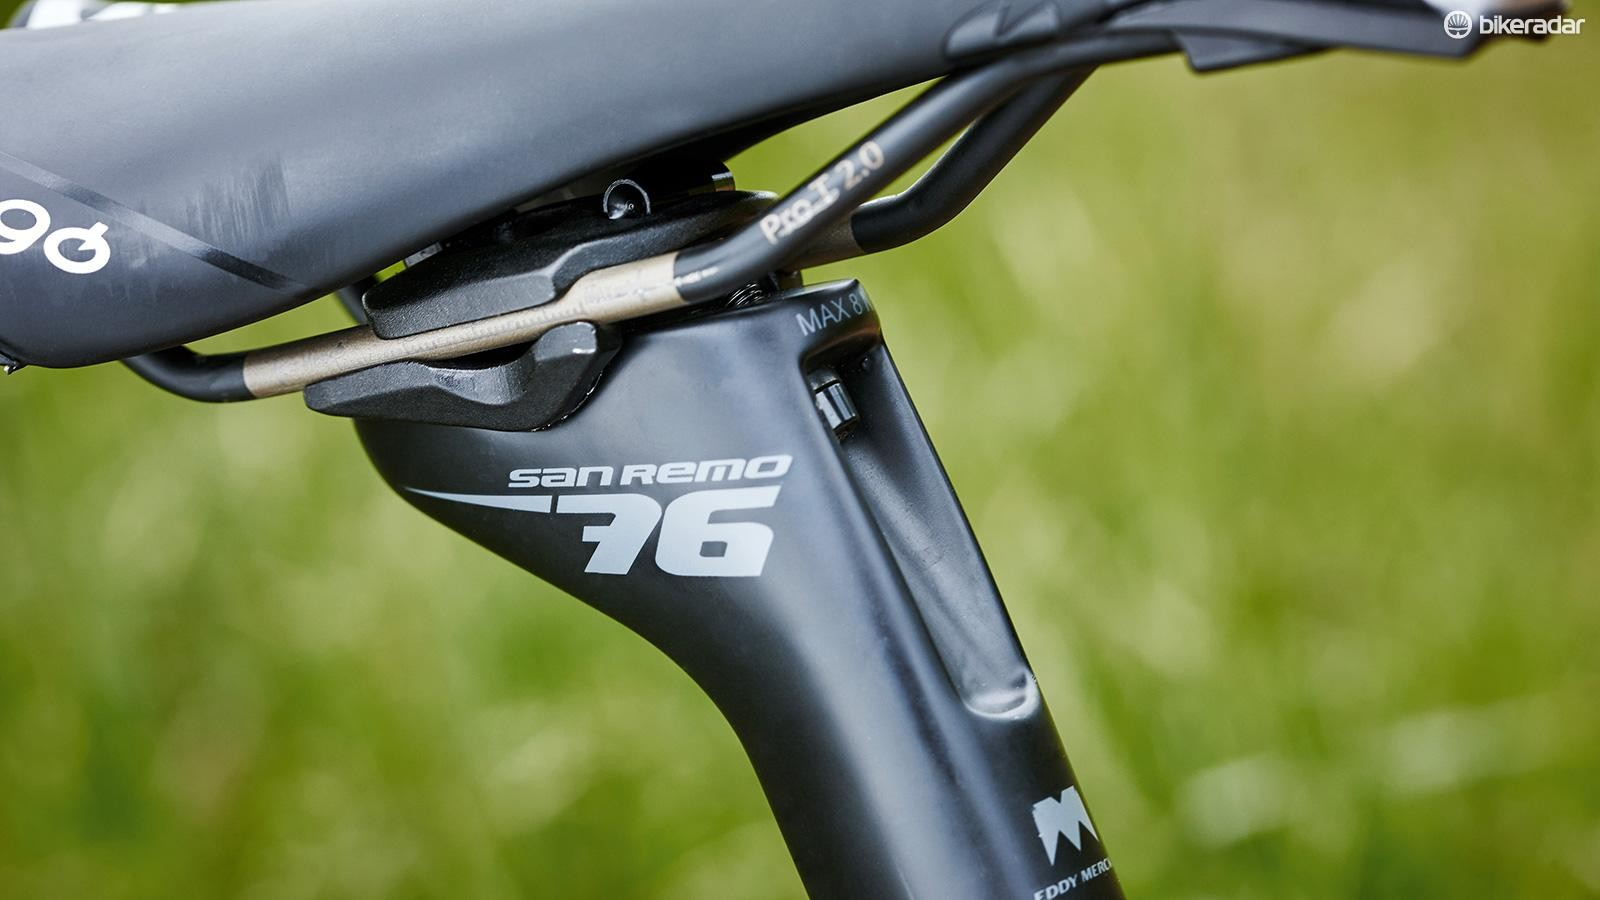 Prologo Scratch saddle makes up part of the top-end finishing kit